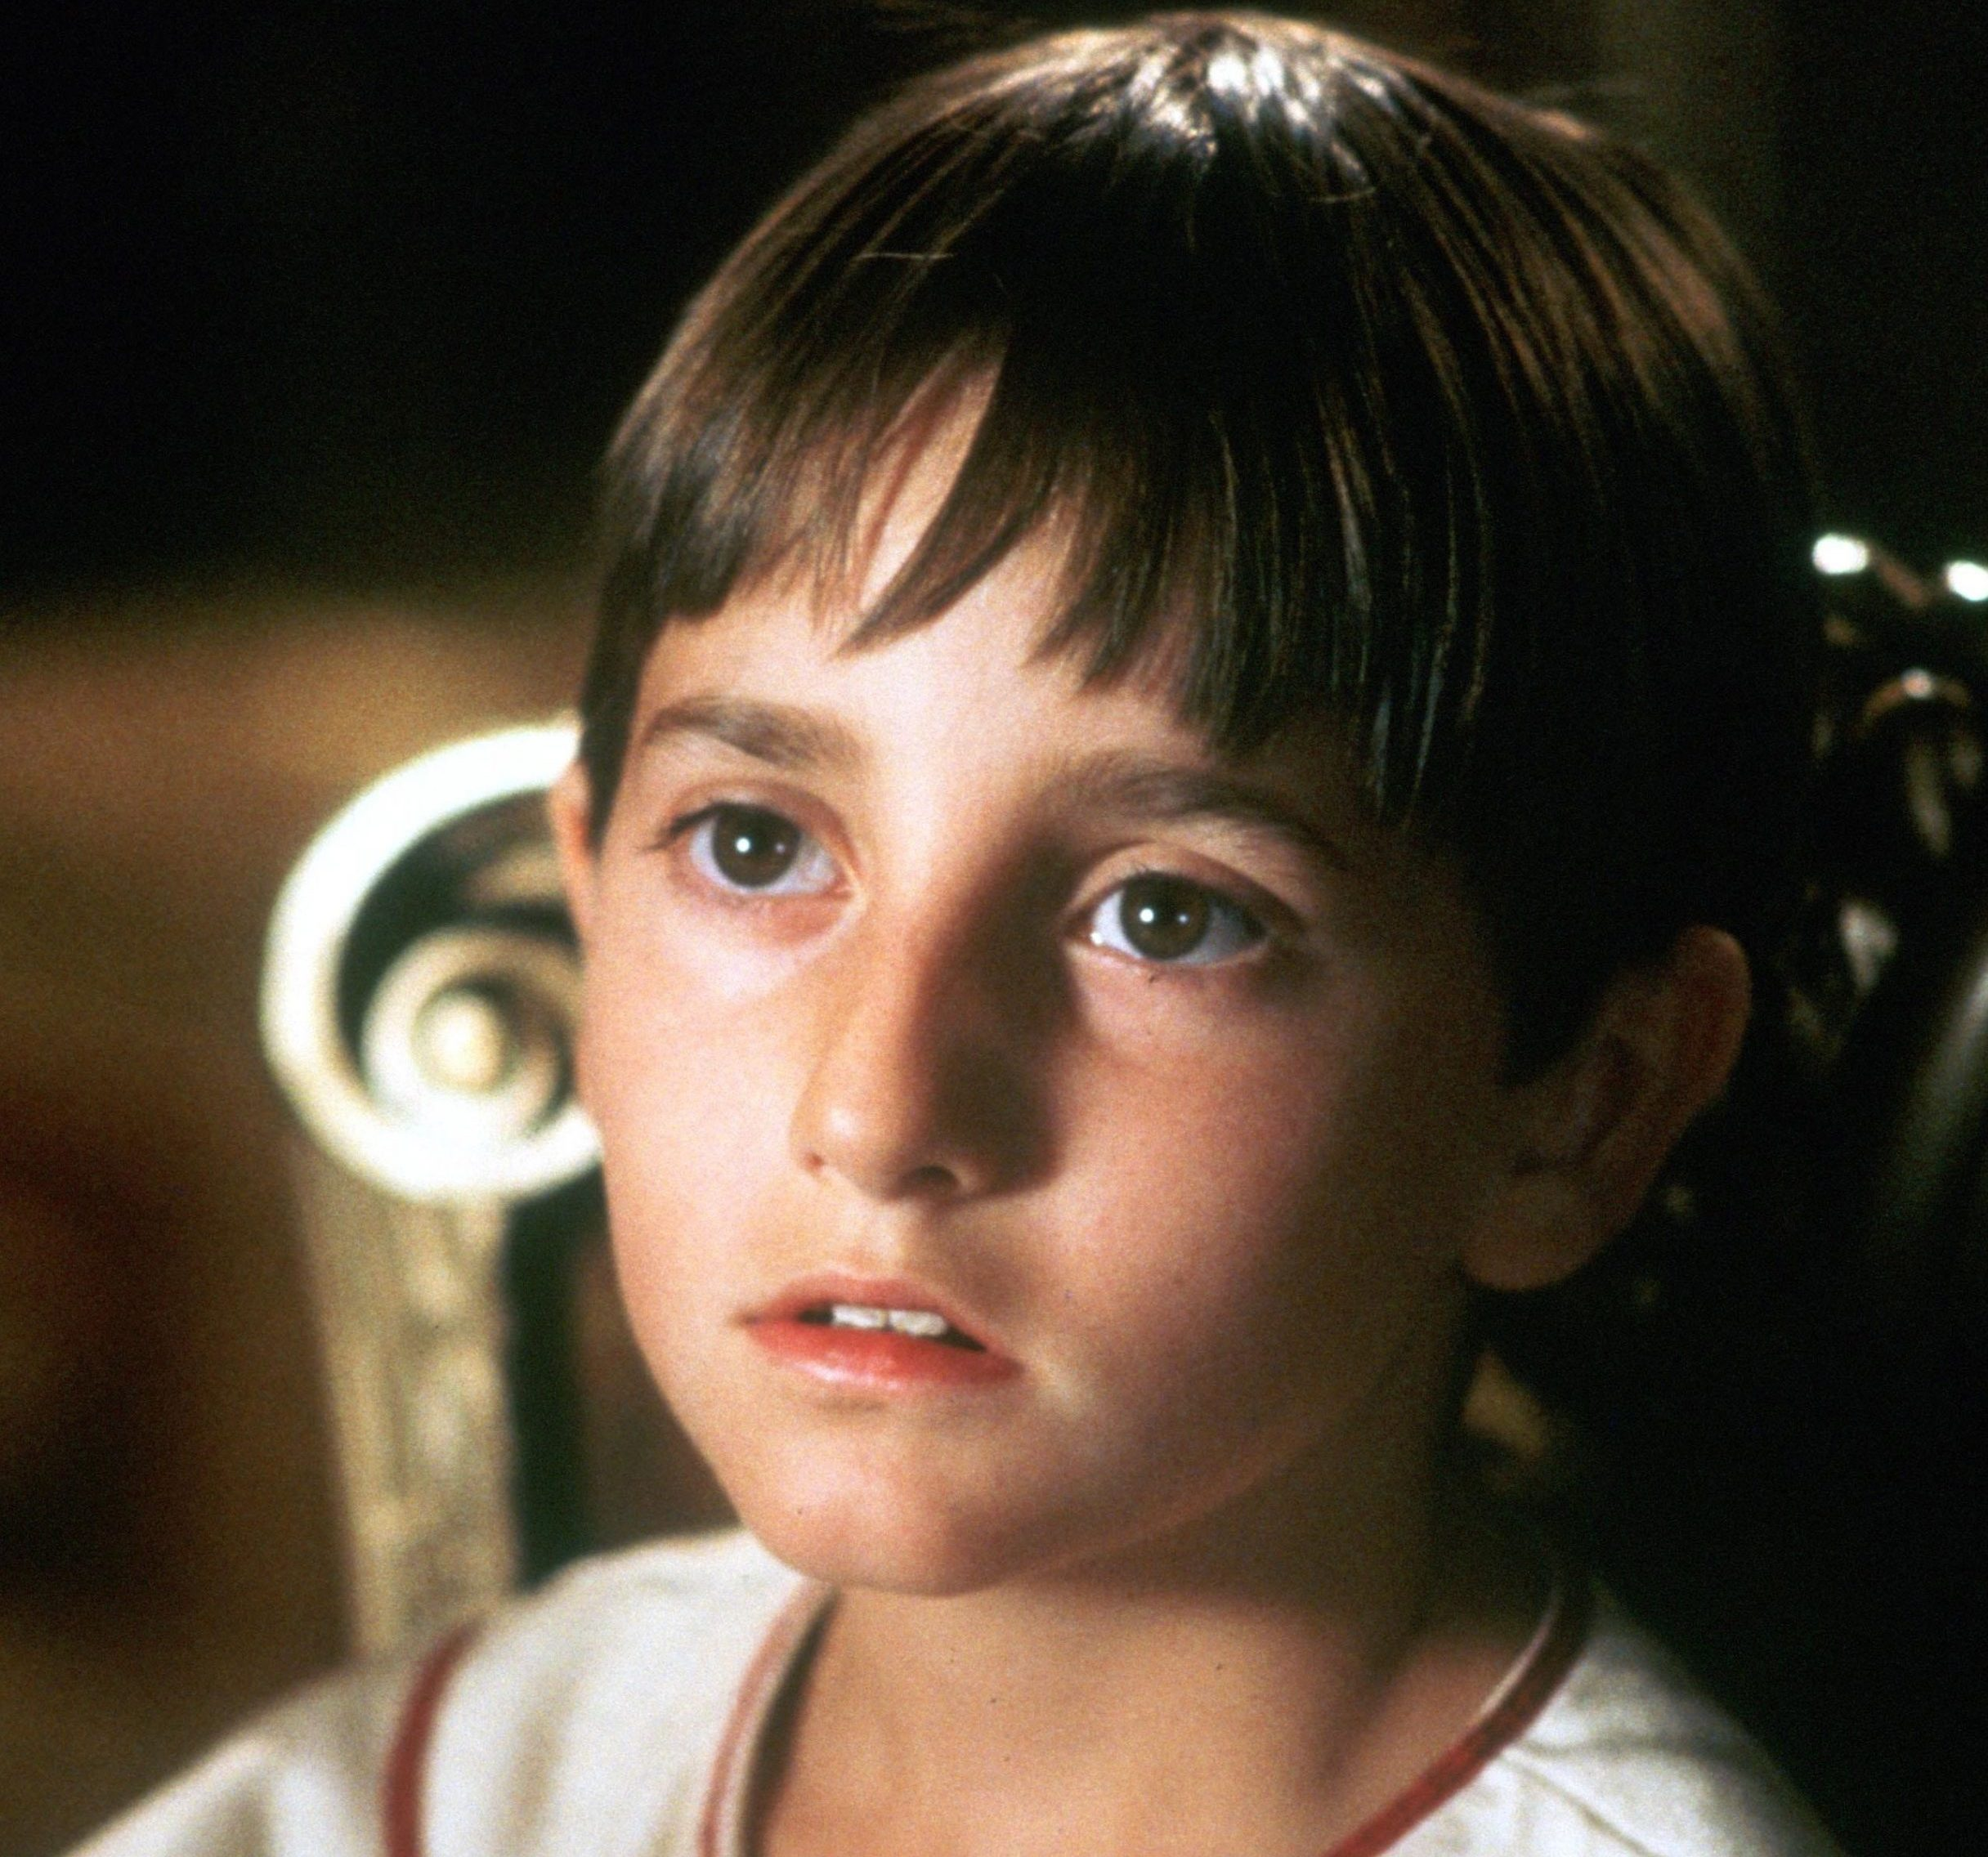 charlie korsmo the child star of hook and dick tracy is now a law professor 231268 1 scaled e1626780924401 23 Celebrities Who Now Have 'Normal' Jobs